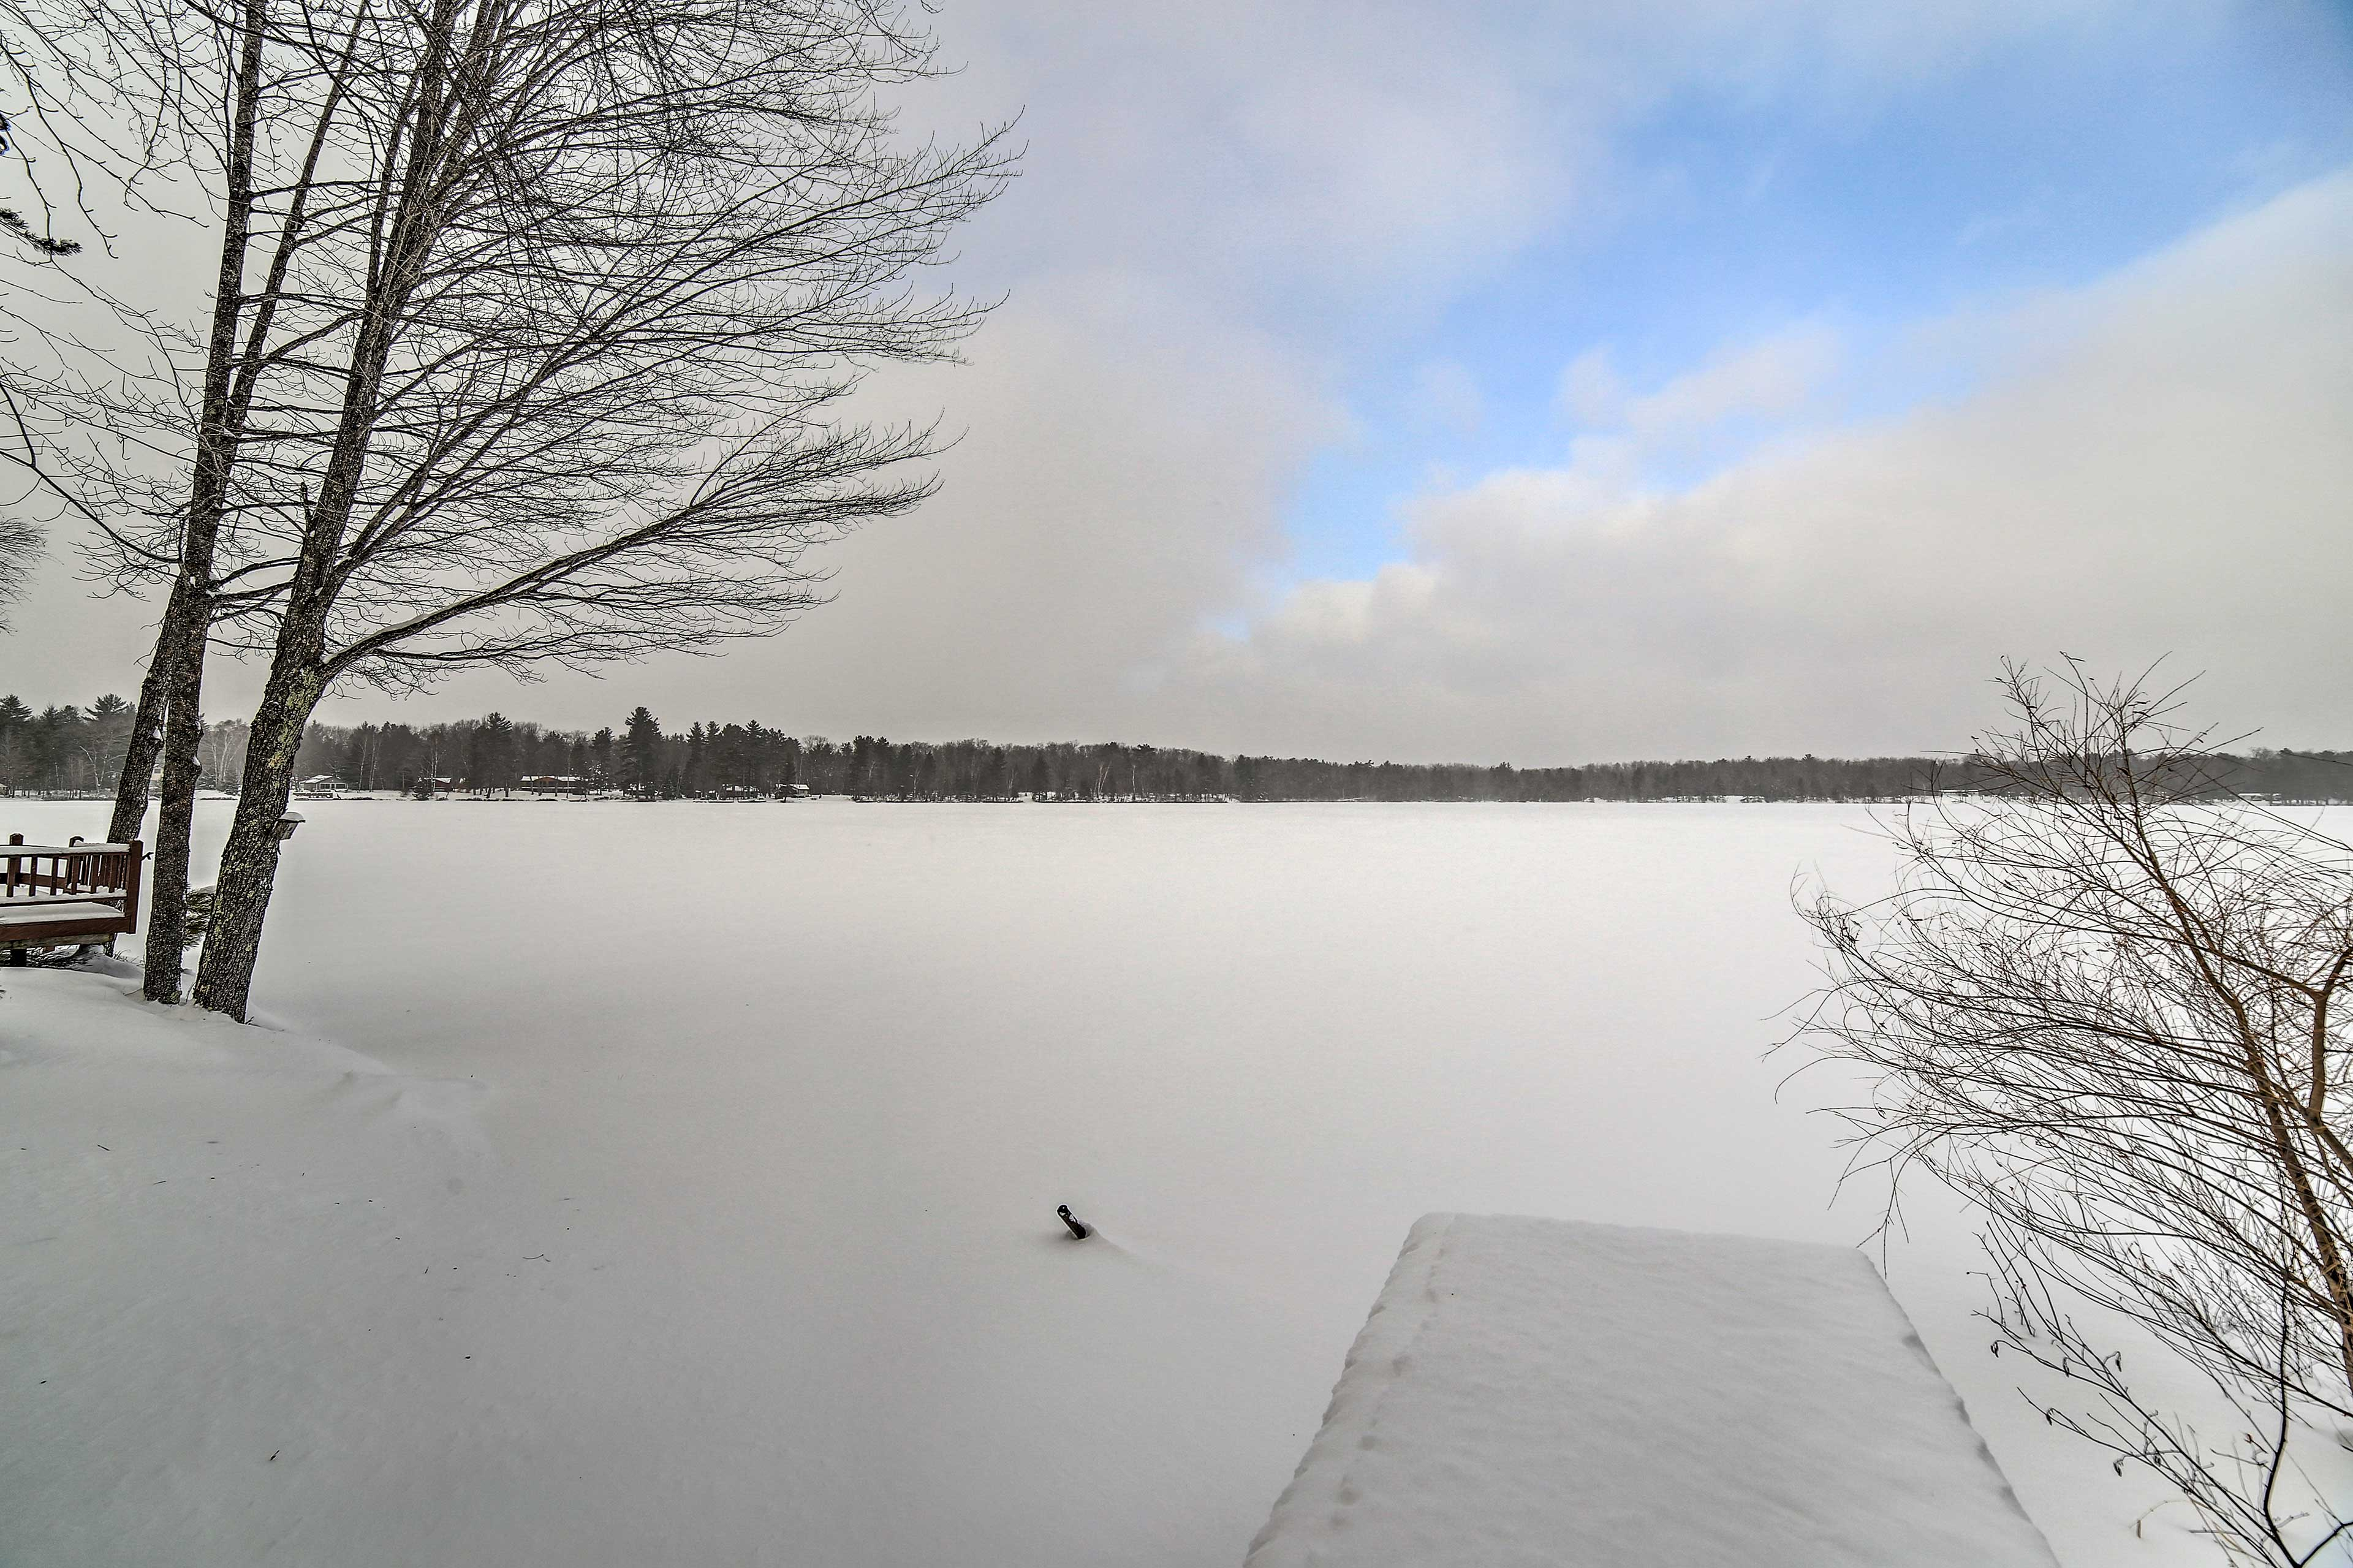 The lake freezes over and turns into a winter wonderland.